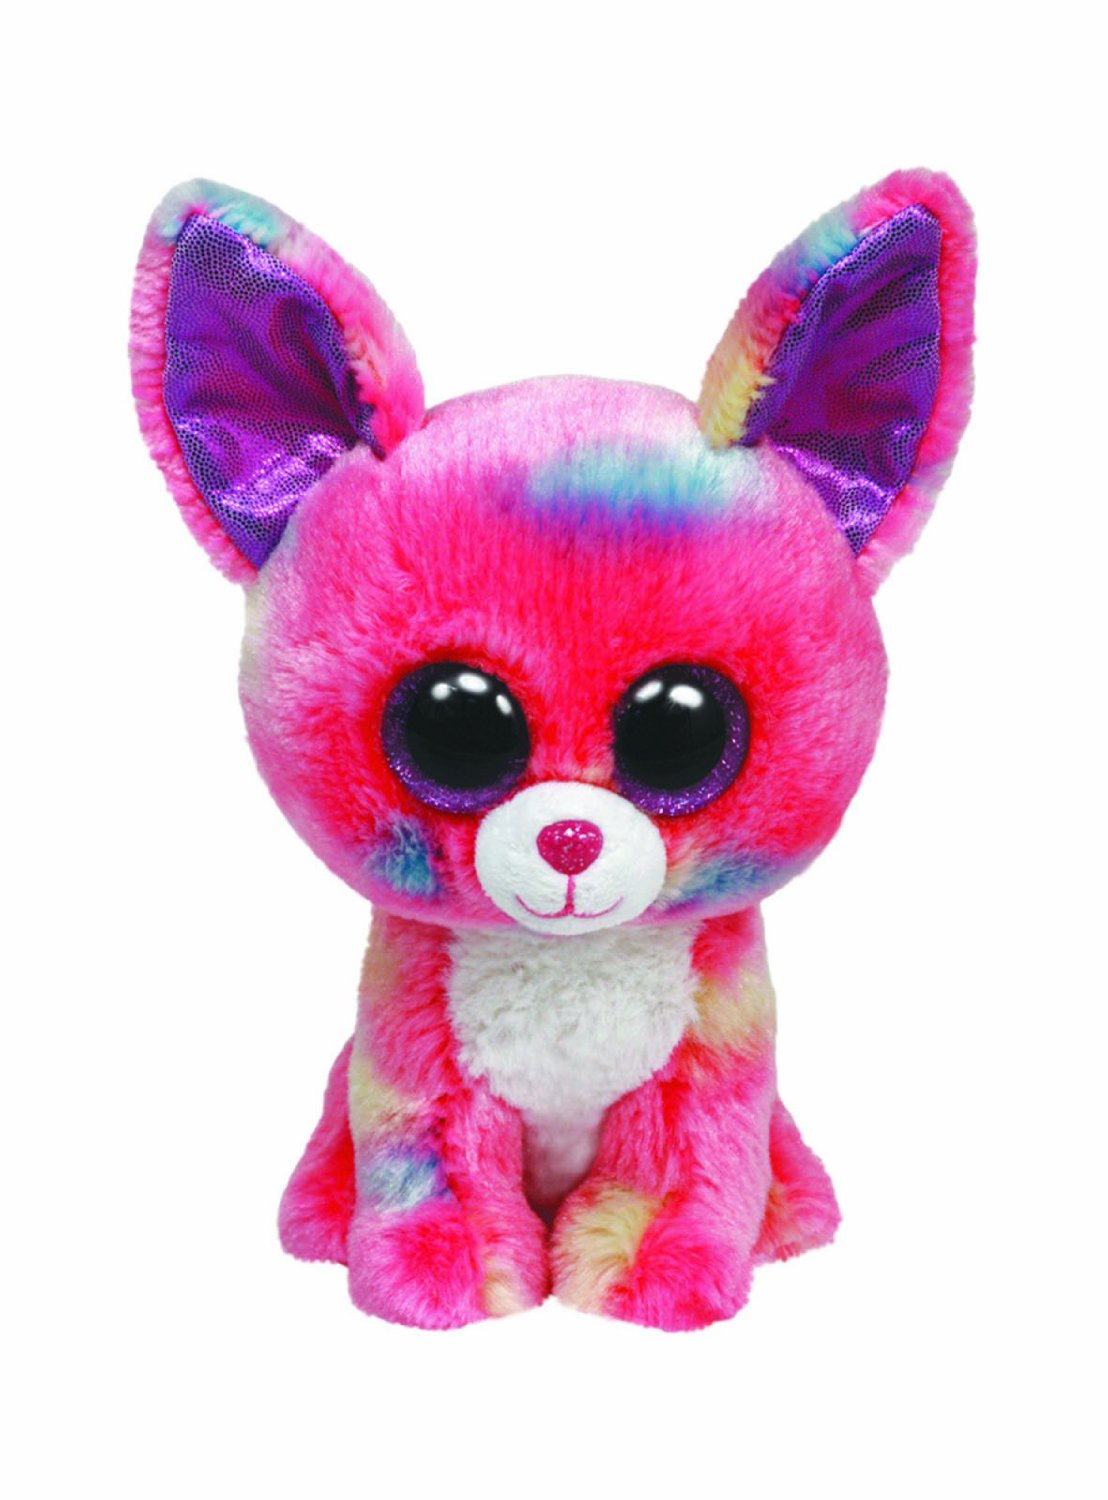 Buy Ty Beanie Boos Muffin Cat - Cancun Chihuahua Dog - Glamour Pink ... 751e12a6098